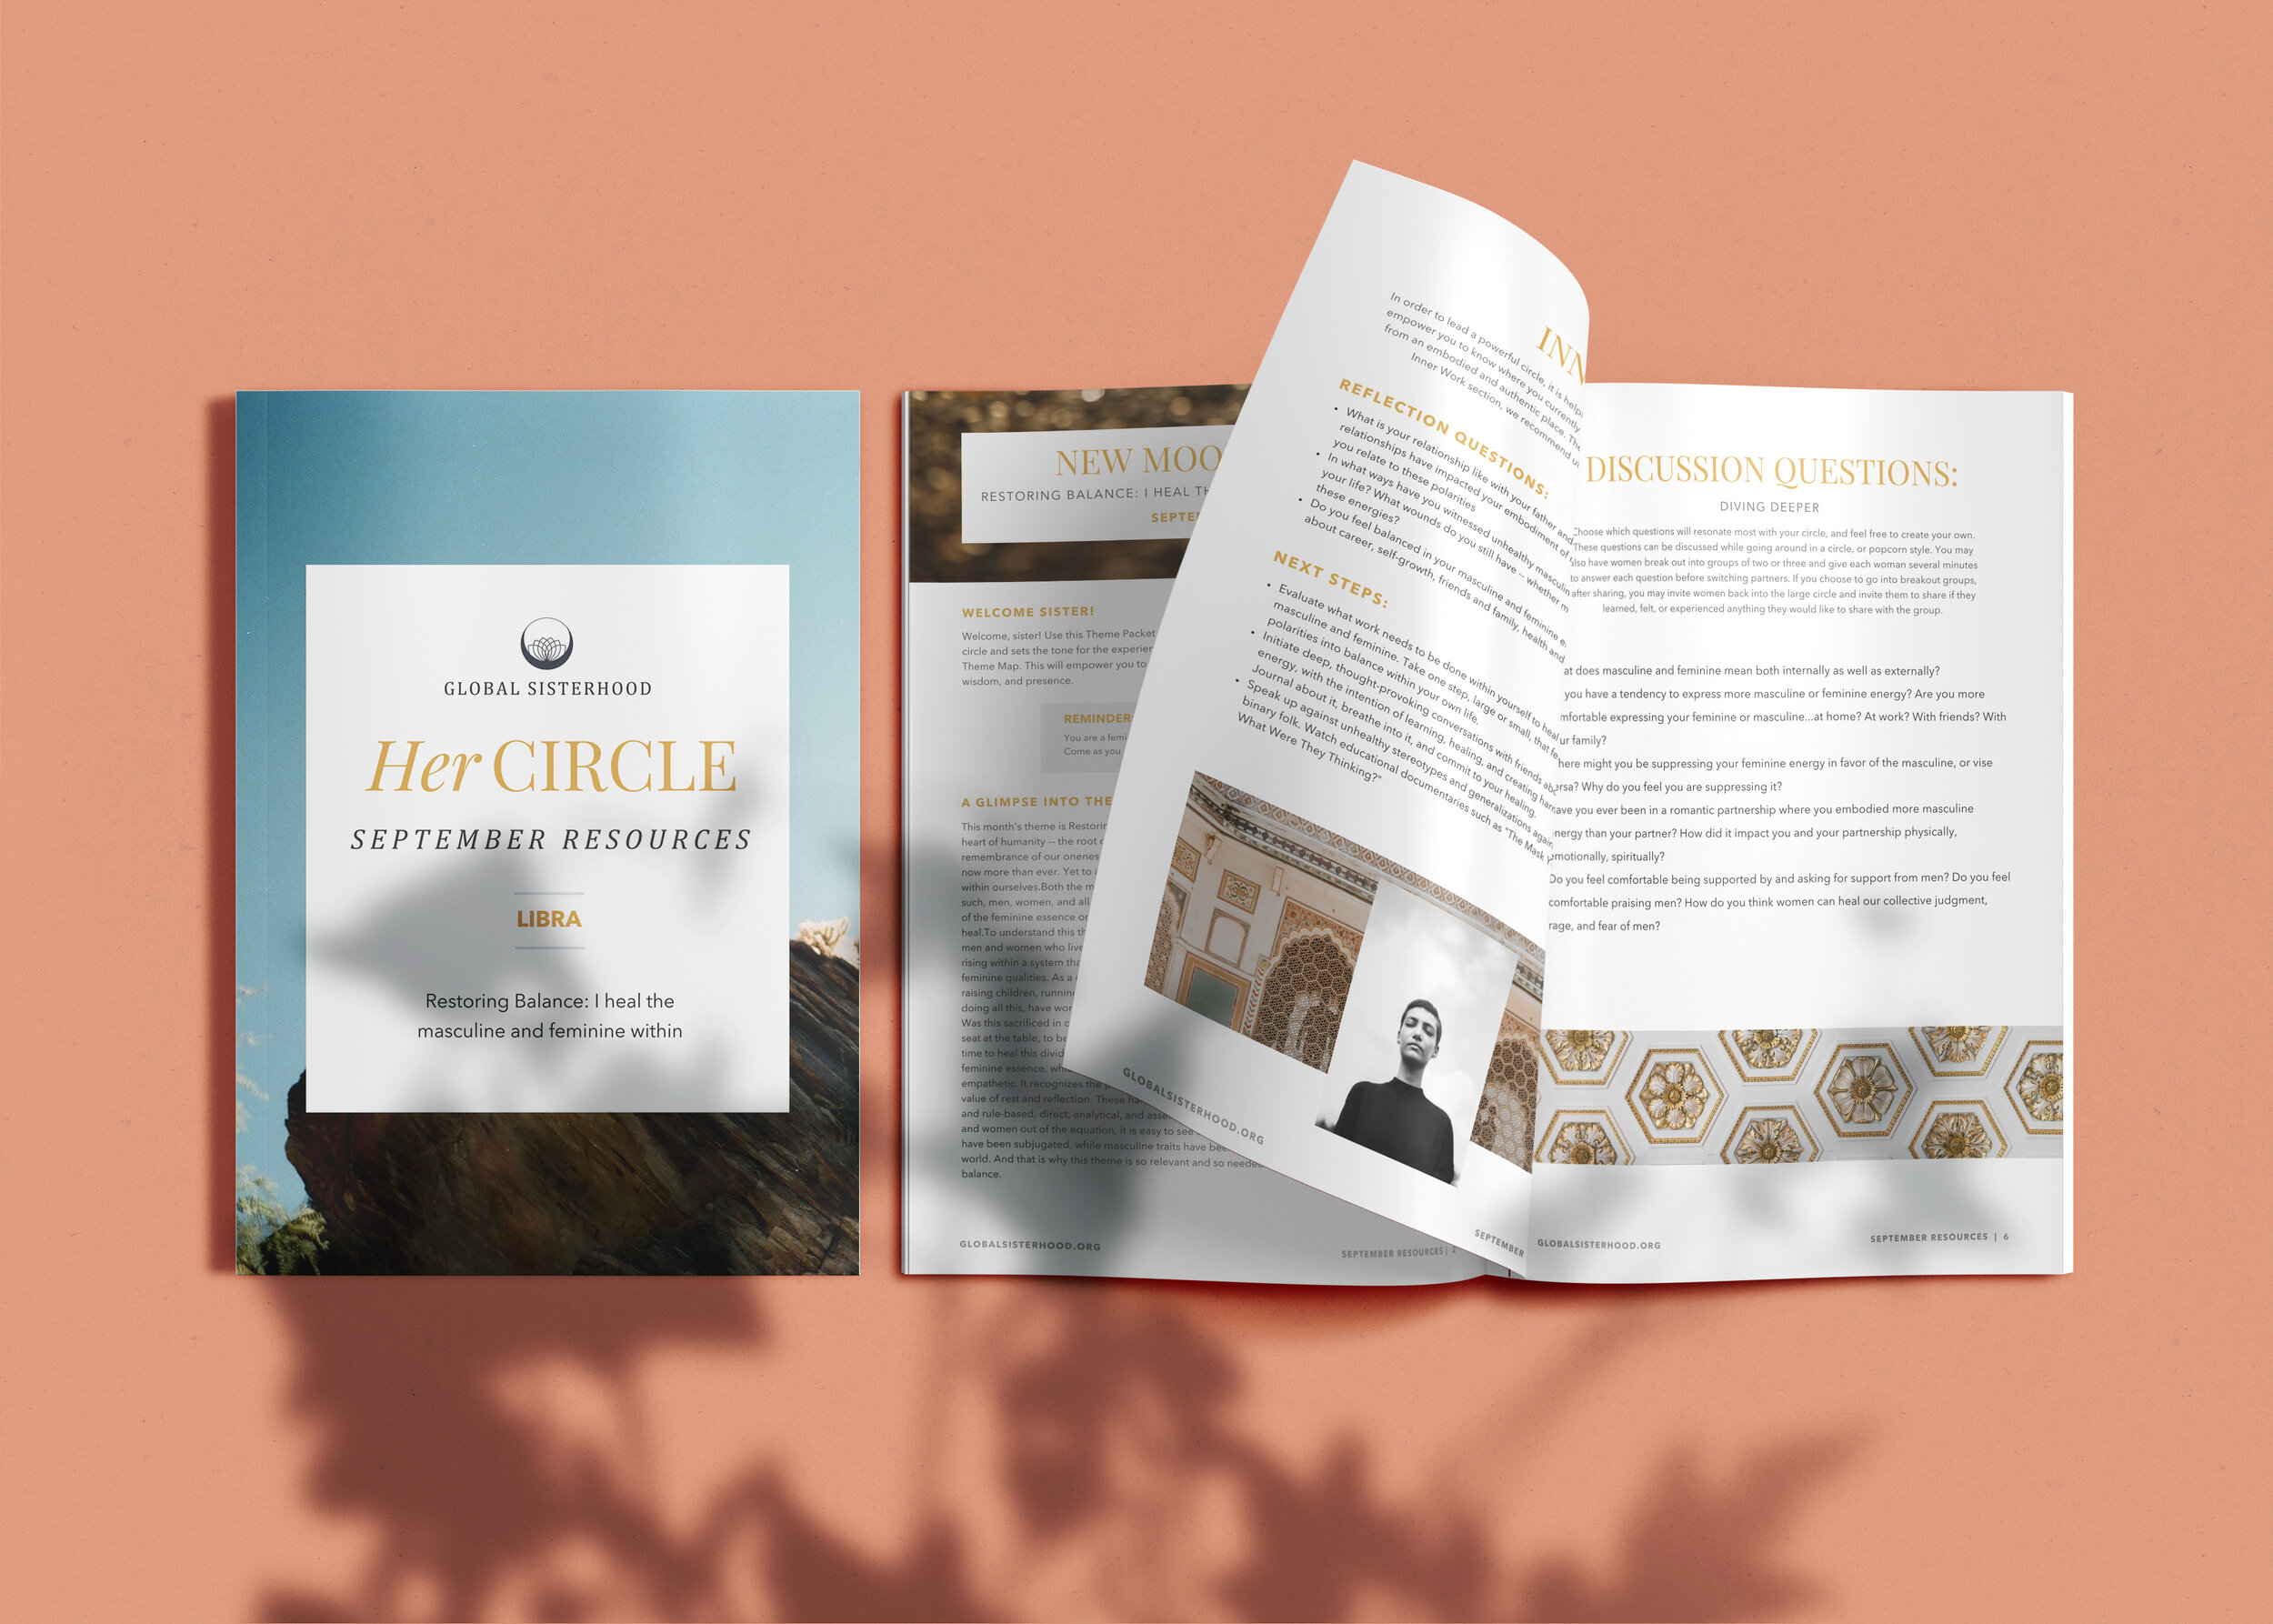 HerCIRCLE - SEPTEMBER RESOURCES NOW AVAILABLE